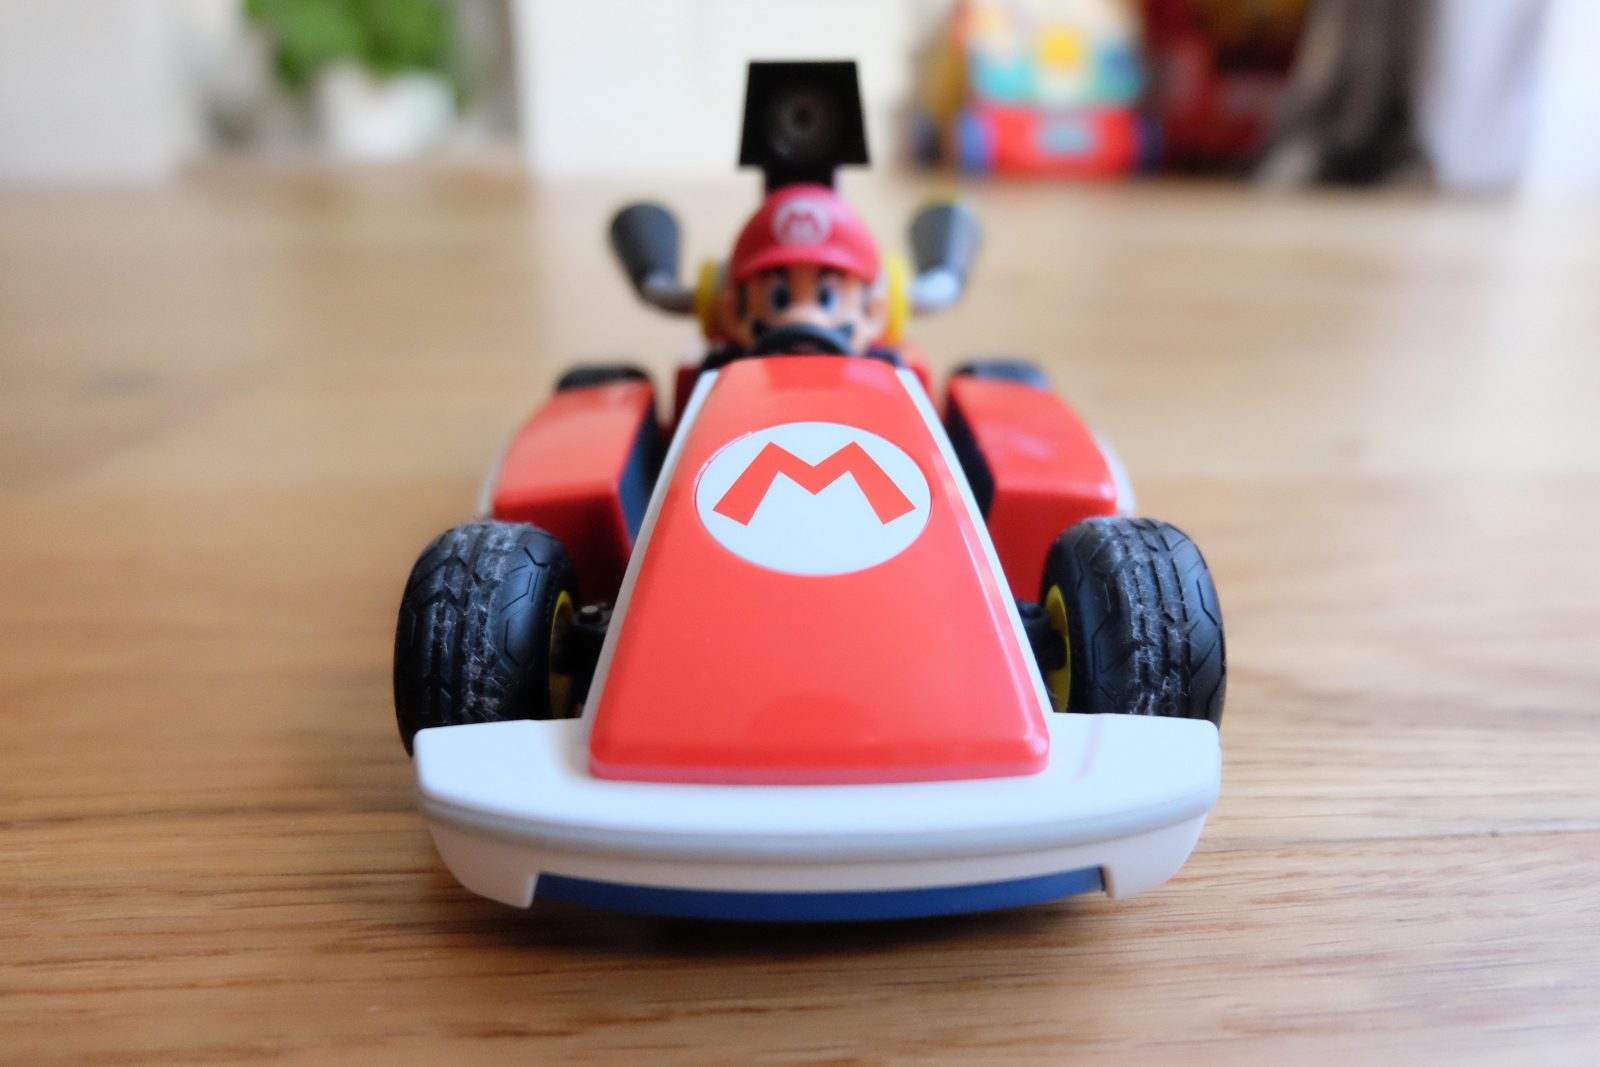 Mario Kart Live: Home Circuit Nintendo Switch Review, DSCF6299 1600x1067%, daily-dad, product-review%